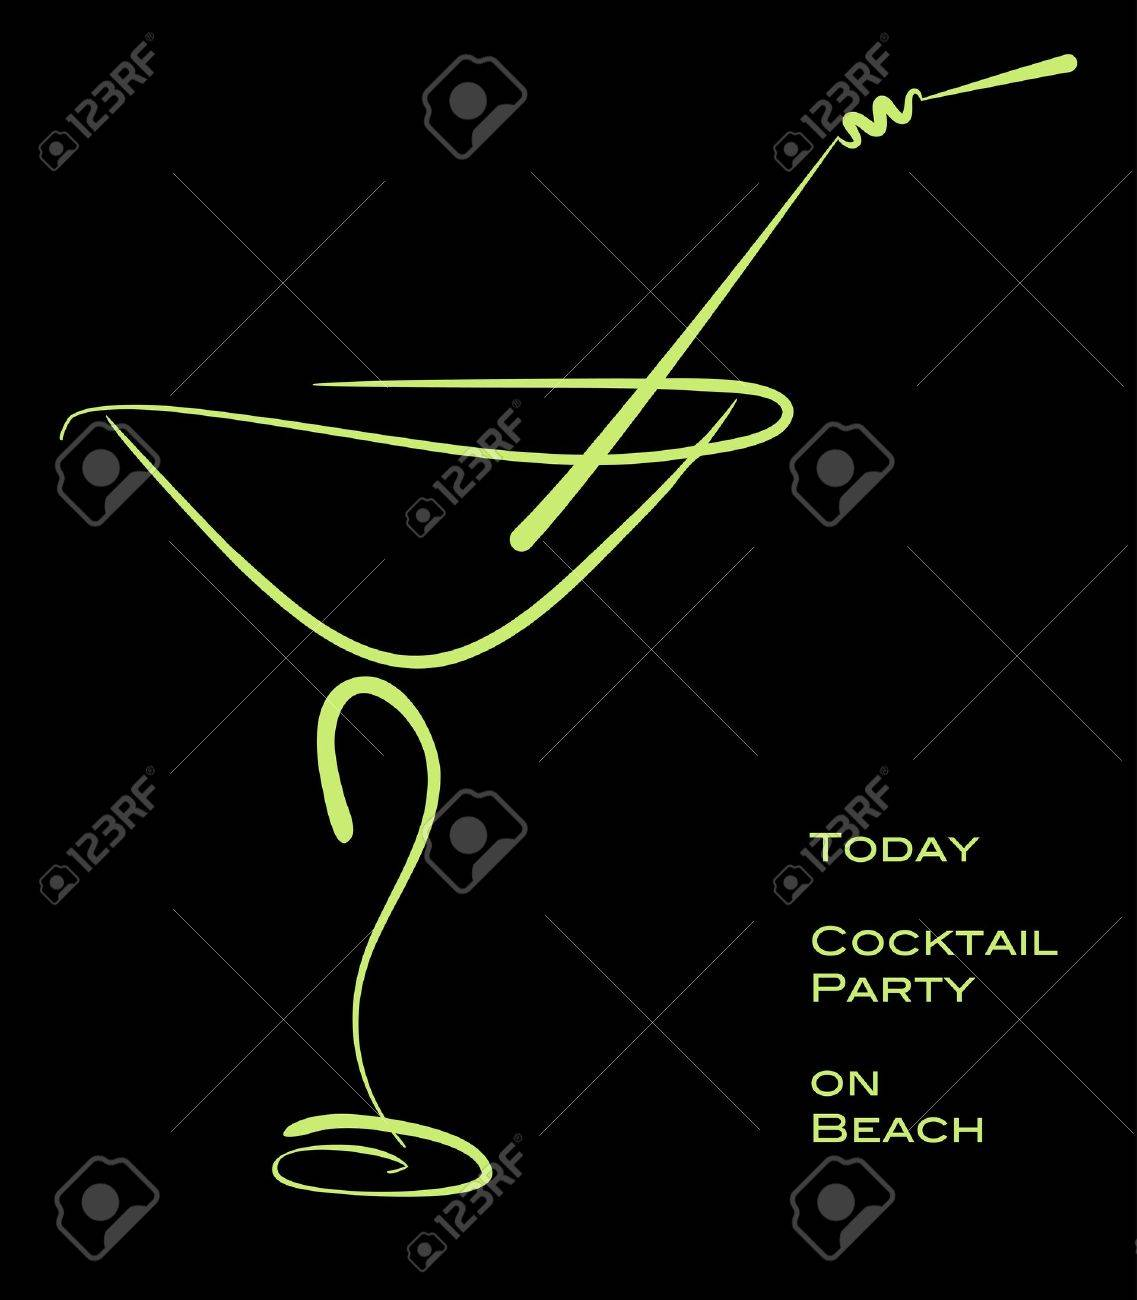 Cocktail party. Green silhouette of alcohol cocktail in glass with straw on black. - 17860166